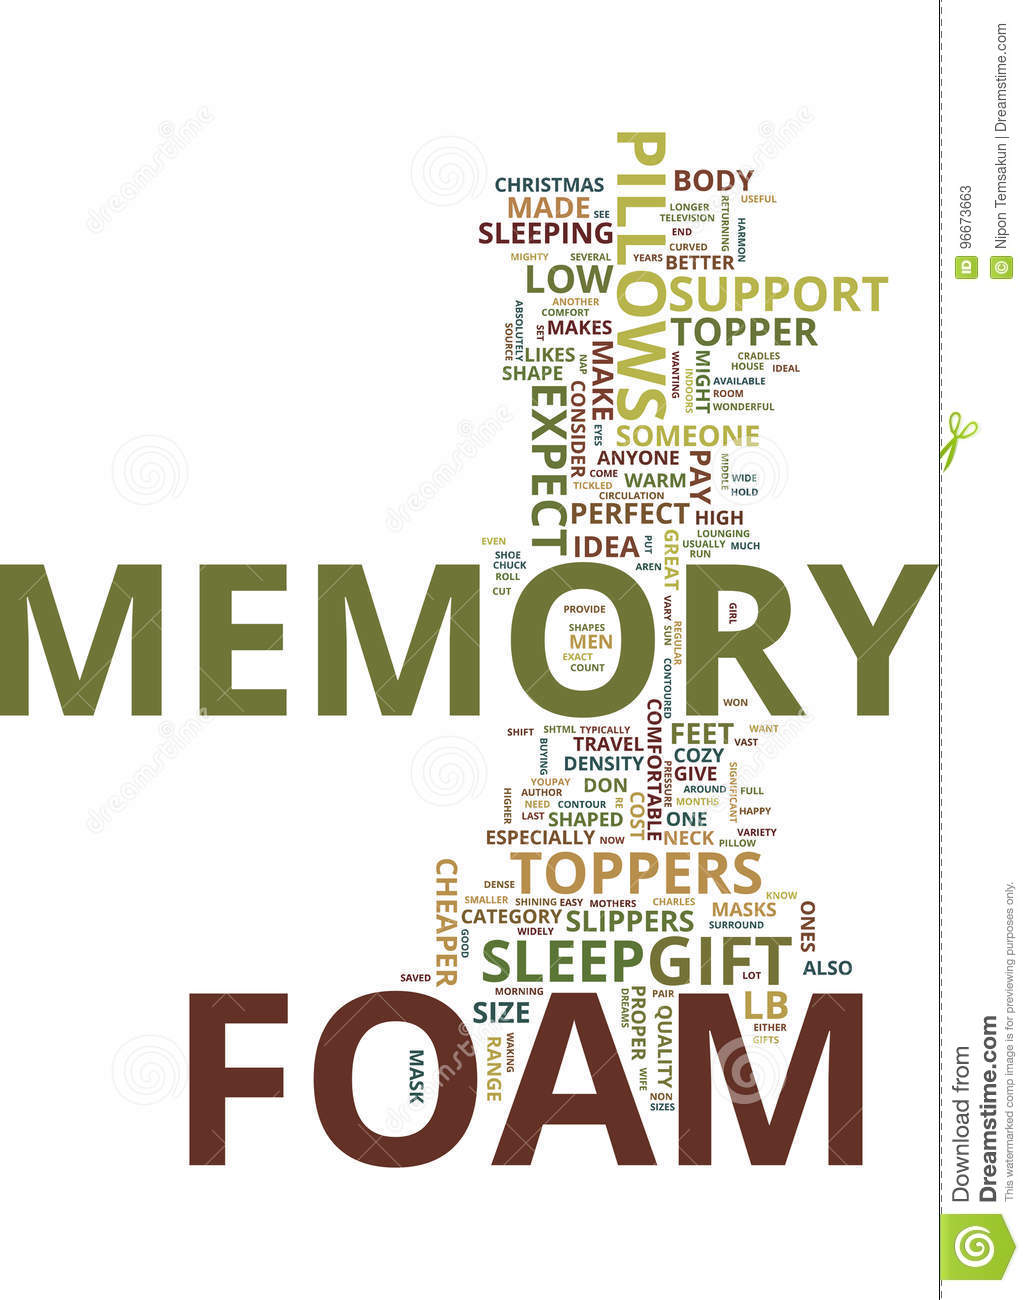 Memory Foam The Perfect Christmas Gift Idea For Your Sweetheart Text ...